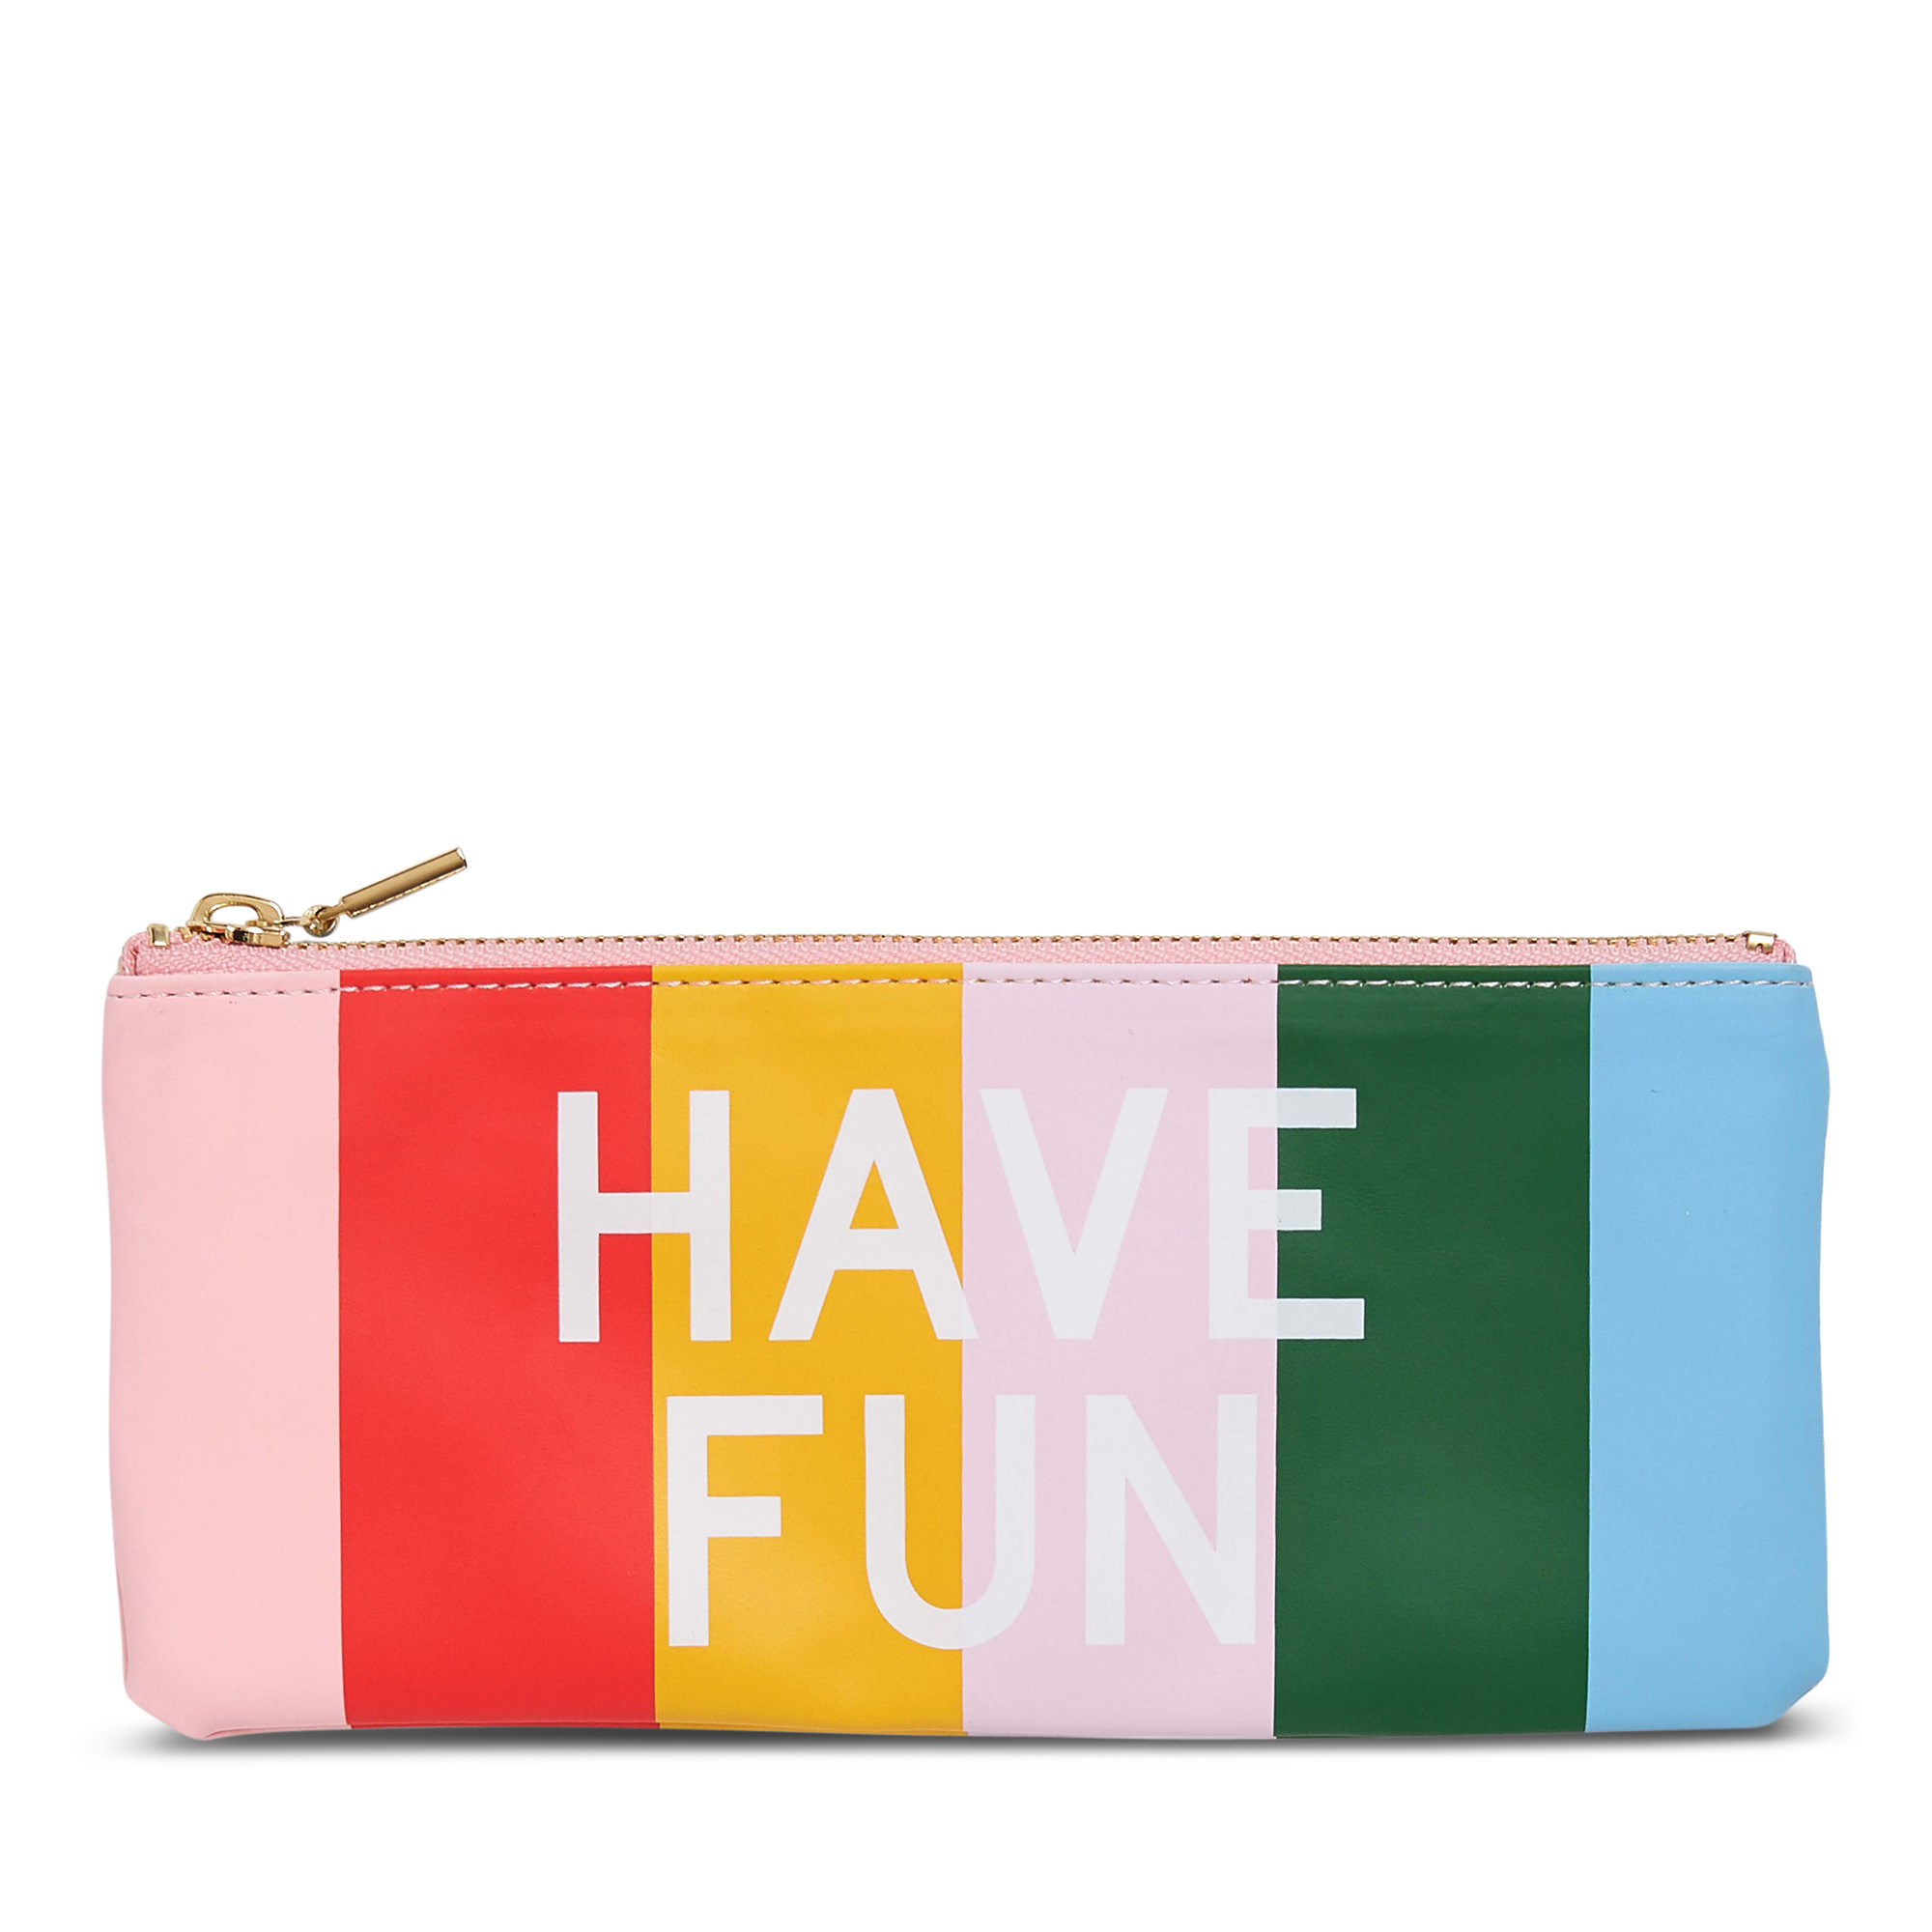 Bloomingdale's ban.do Work Hard, Have Fun Pouch, $14